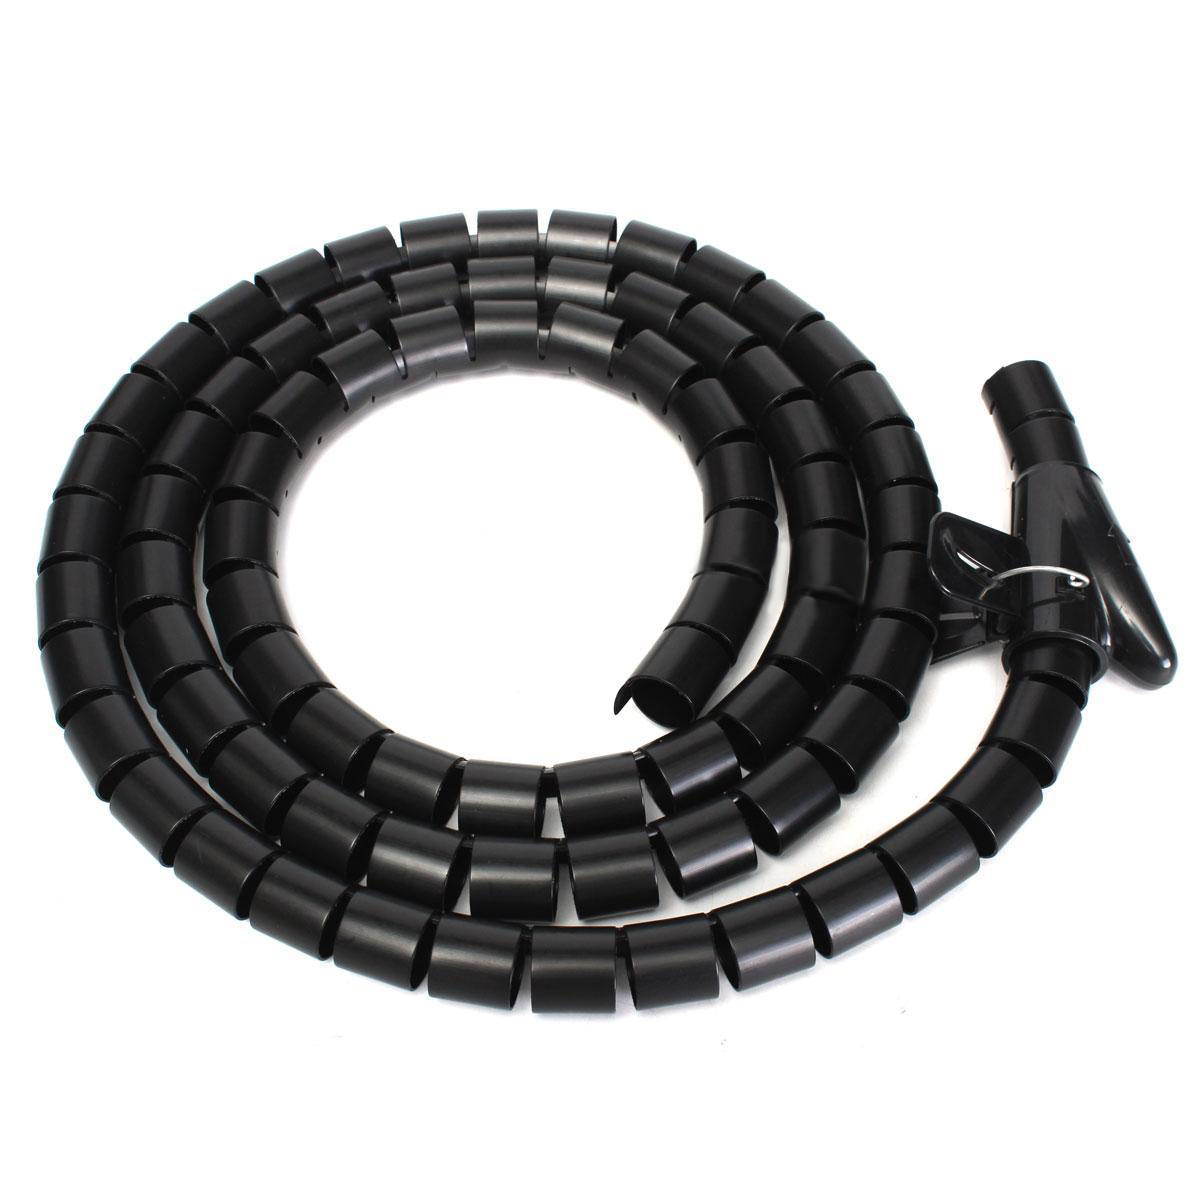 1pc 25mm spiral wrap tool black spiral wrapping band cable wrap tidy